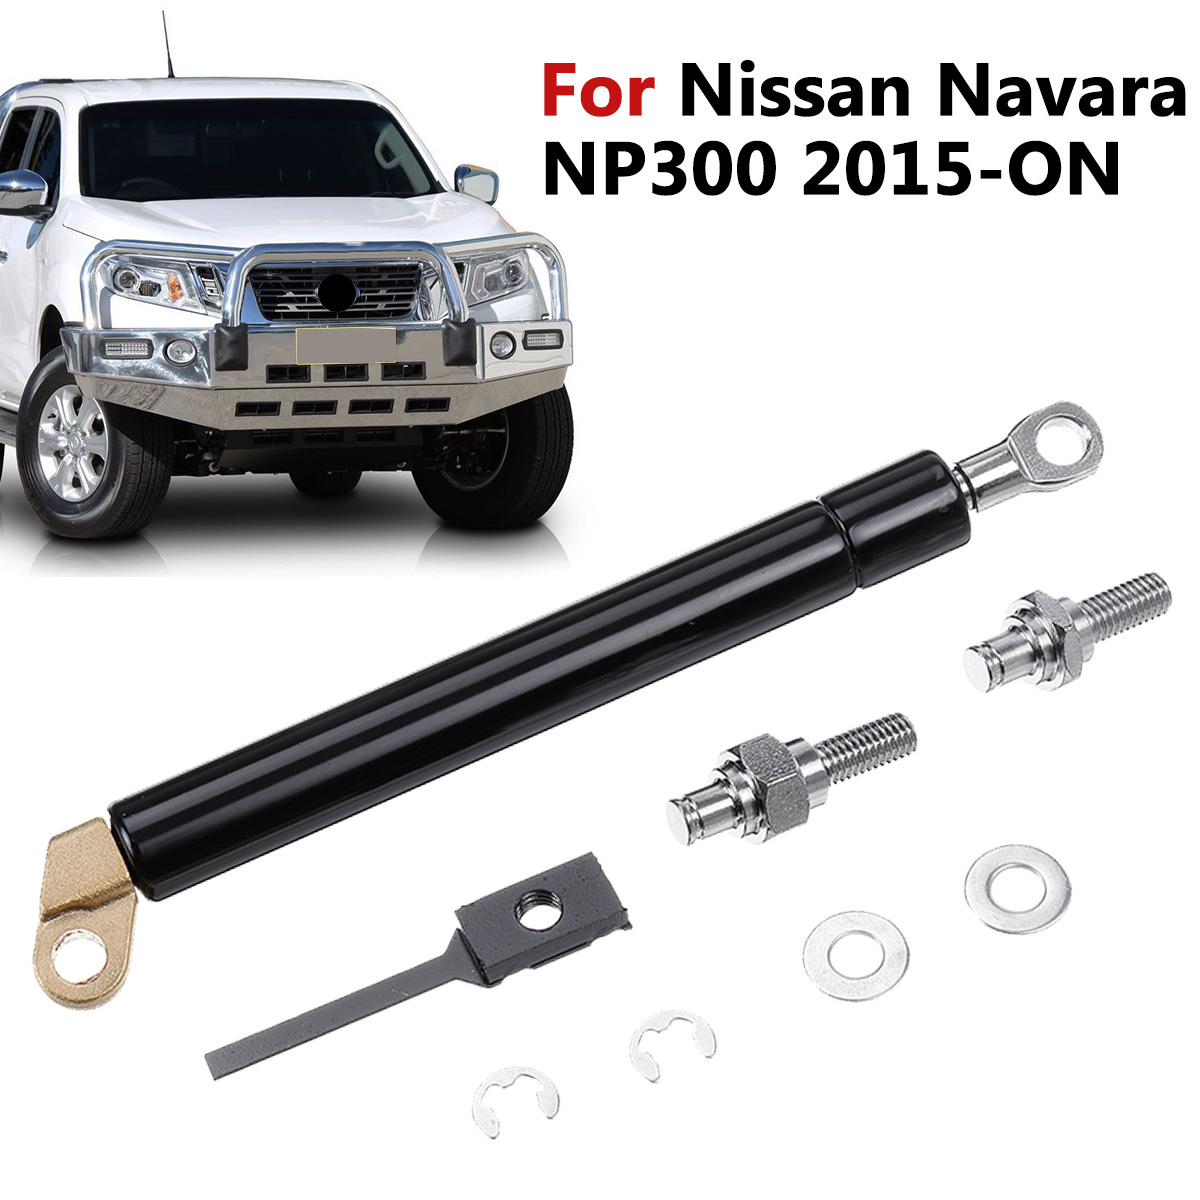 KF-SPRING 1Pc Rear Trunk Gas Strut Liftgate Tailgate Easy Slow Down For Nissan Navara NP300 2015-2019 Color : 1 PC